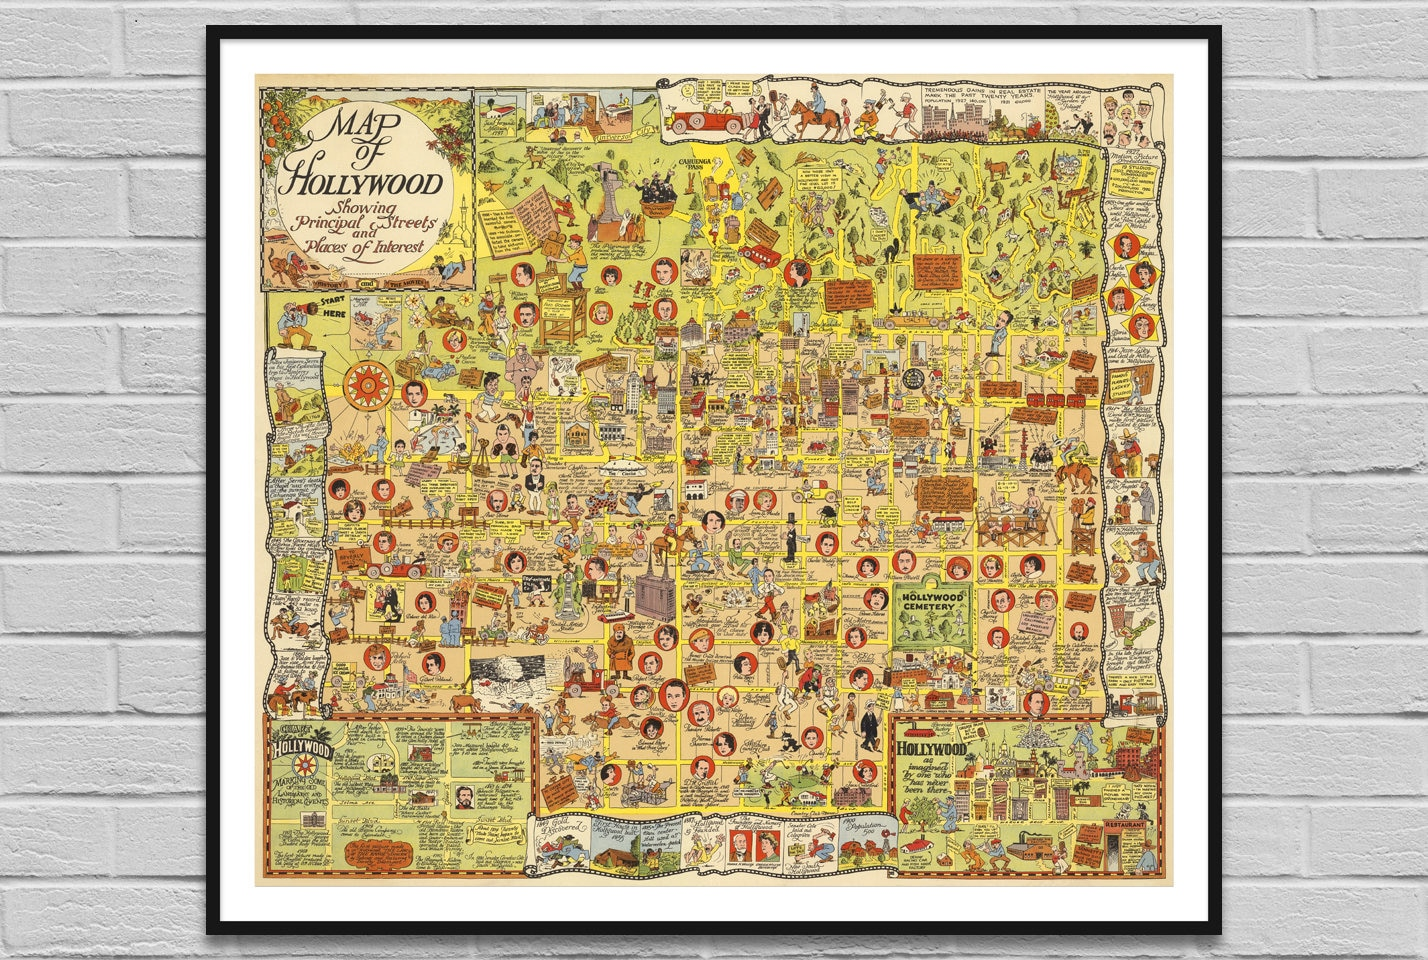 Map of Hollywood USA / vintage map history movies / old map